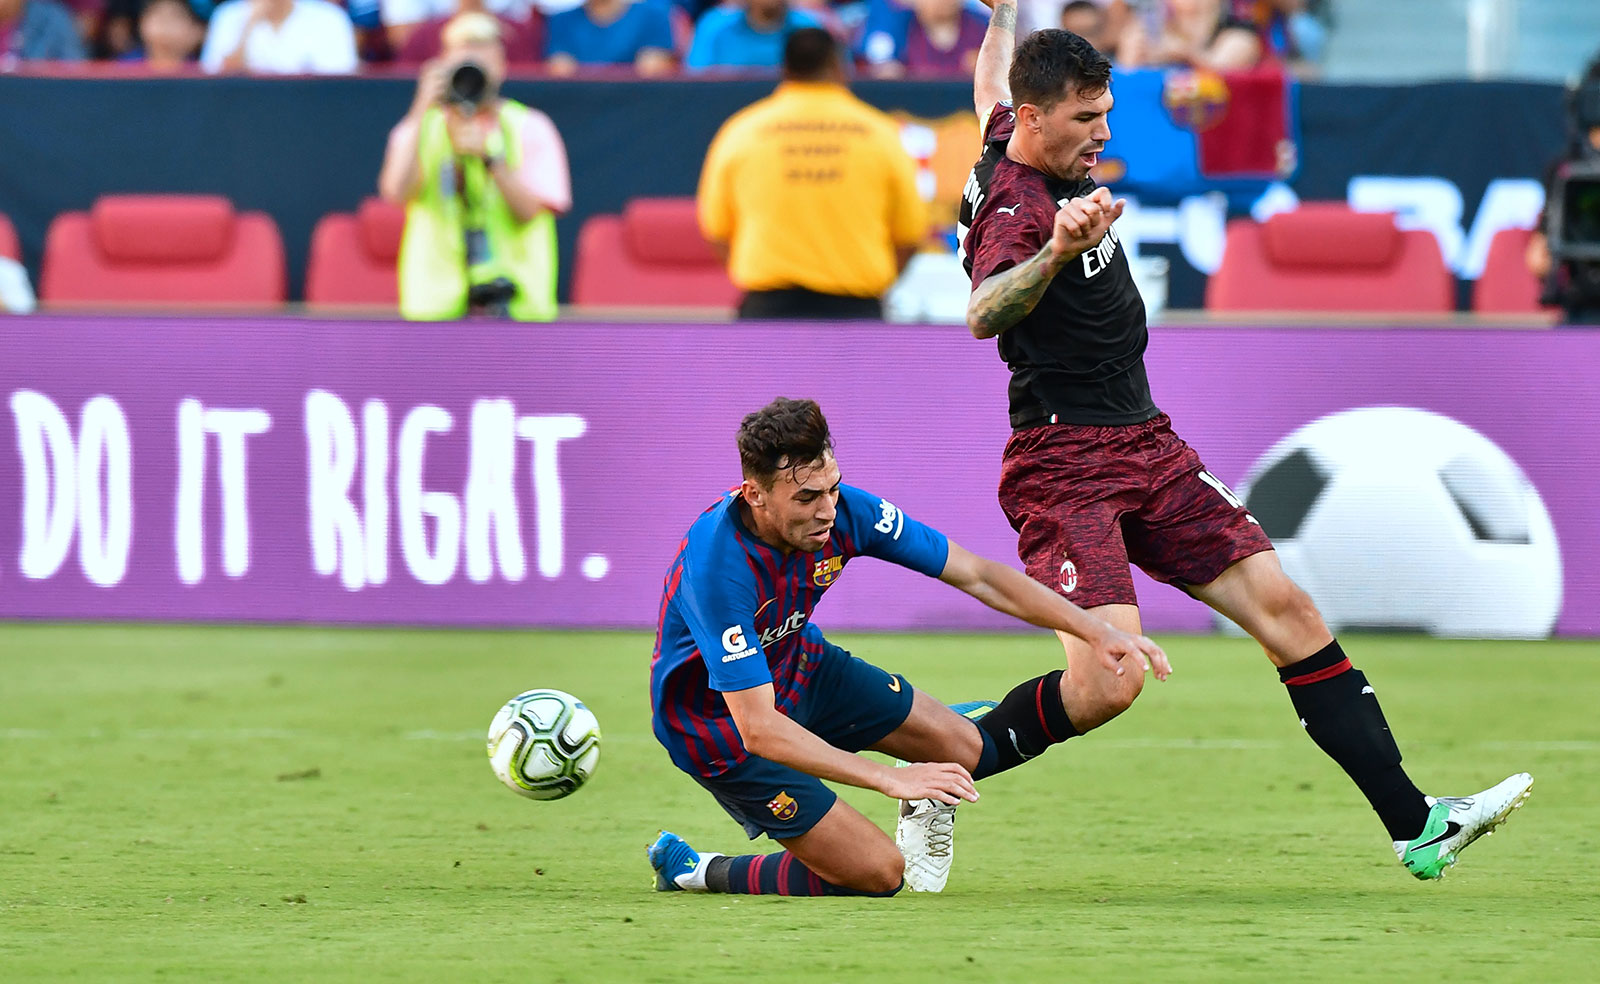 Alessio Romagnoli and Munir El Haddadi during Barcelona-Milan at Levi's Stadium on August 5, 2018. (FREDERIC J. BROWN/AFP/Getty Images)